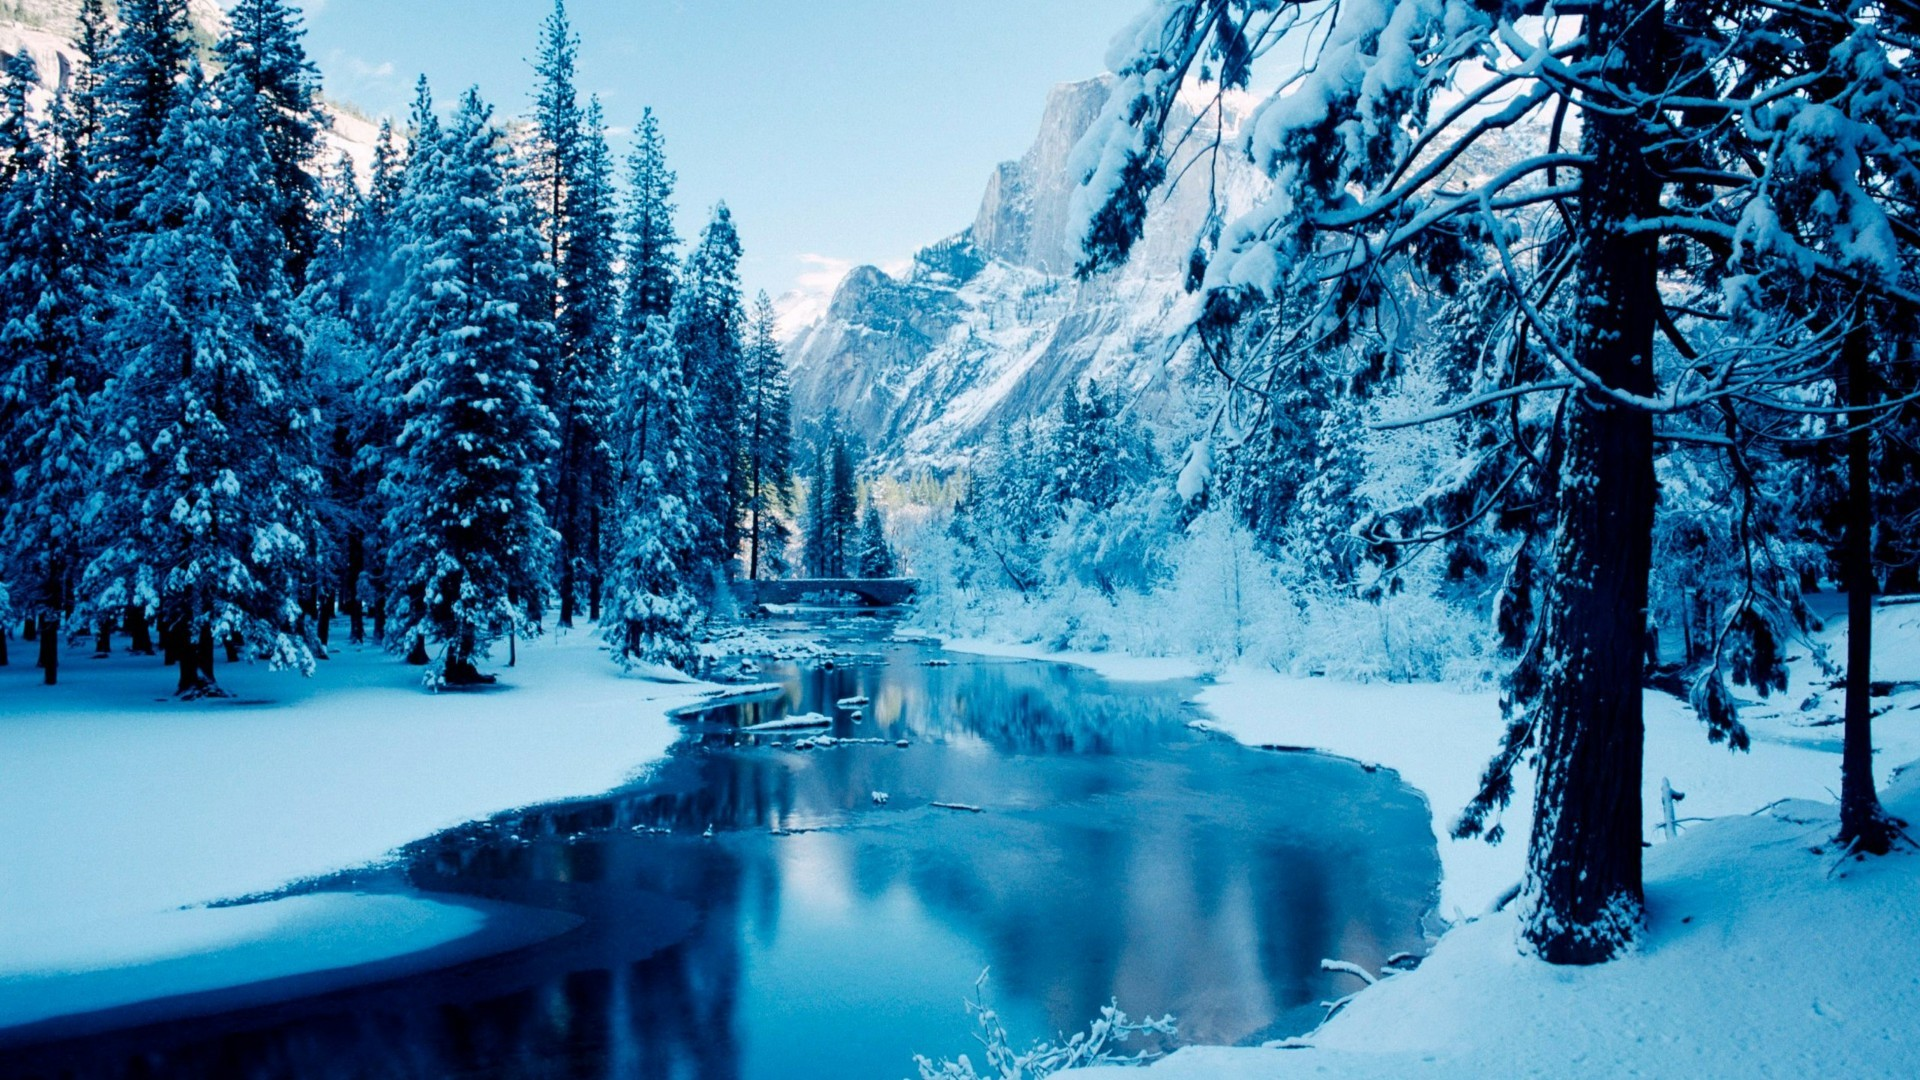 Title. Snowy winter forest